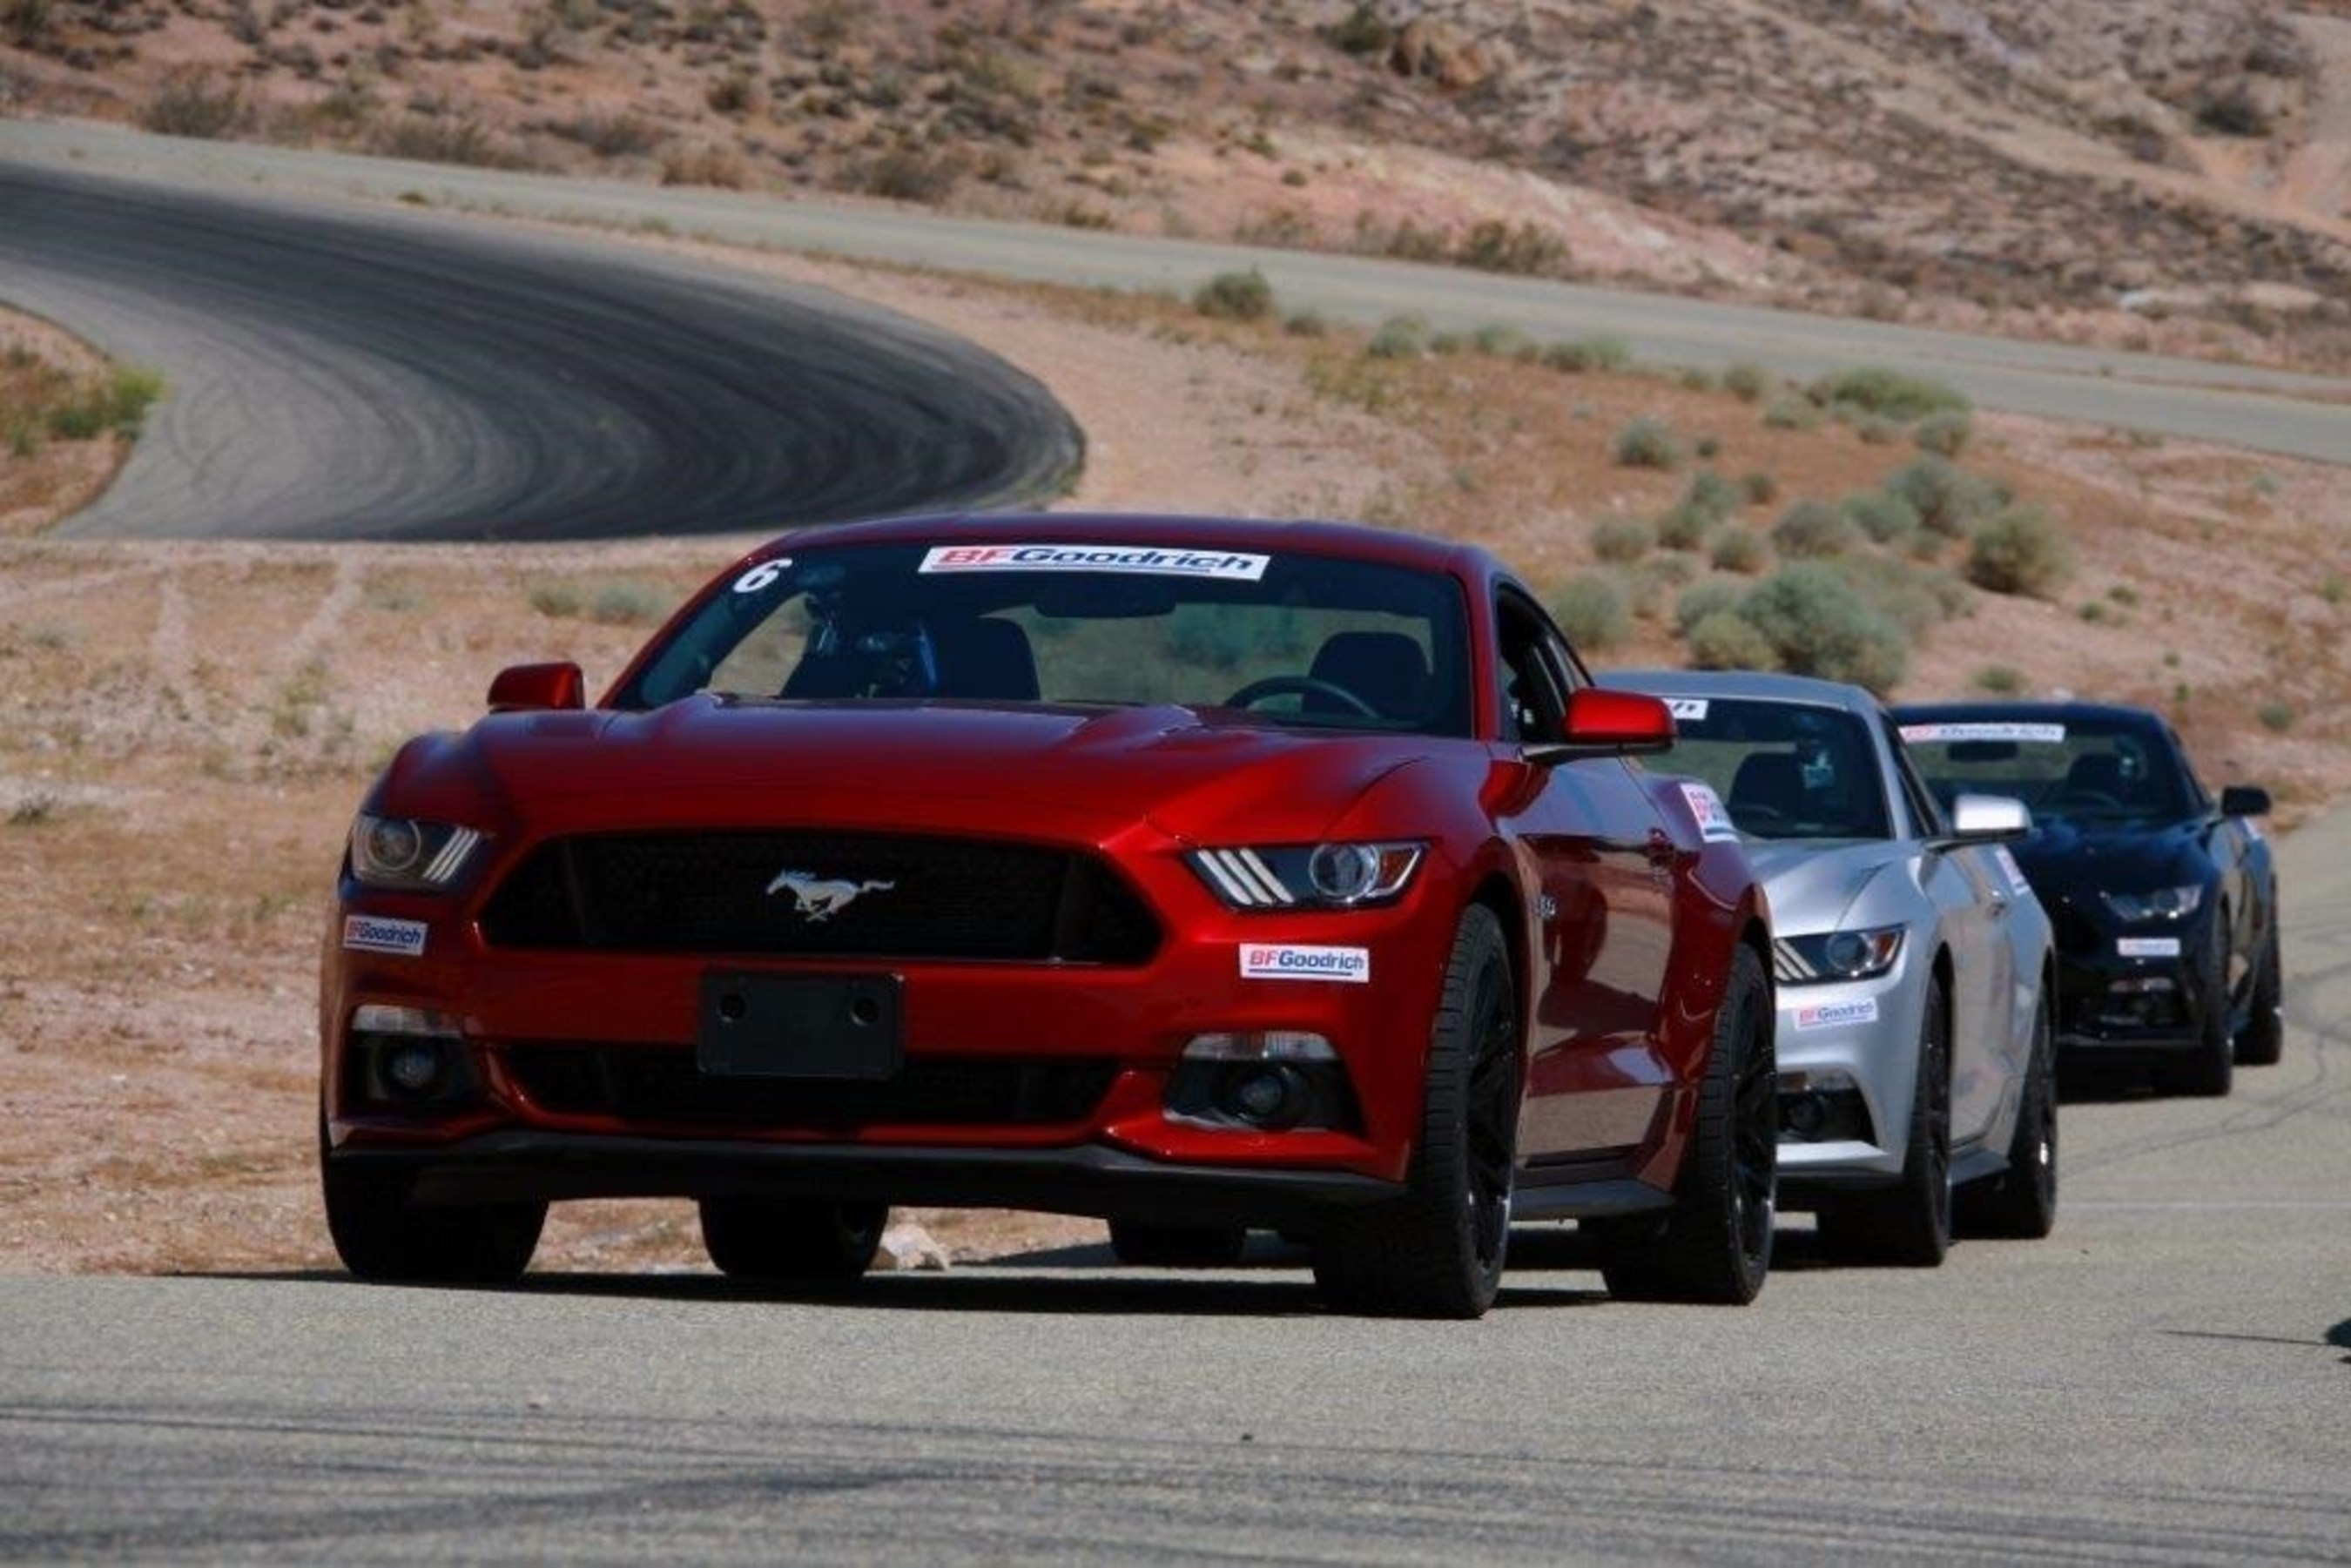 """Drivers competed to prove they were """"Driver Enough"""" both on- and off-road, including in a 2015 Ford Mustang GT with BFGoodrich(R) g-Force(TM) COMP-2(TM) A/S ultra-high performance tires."""